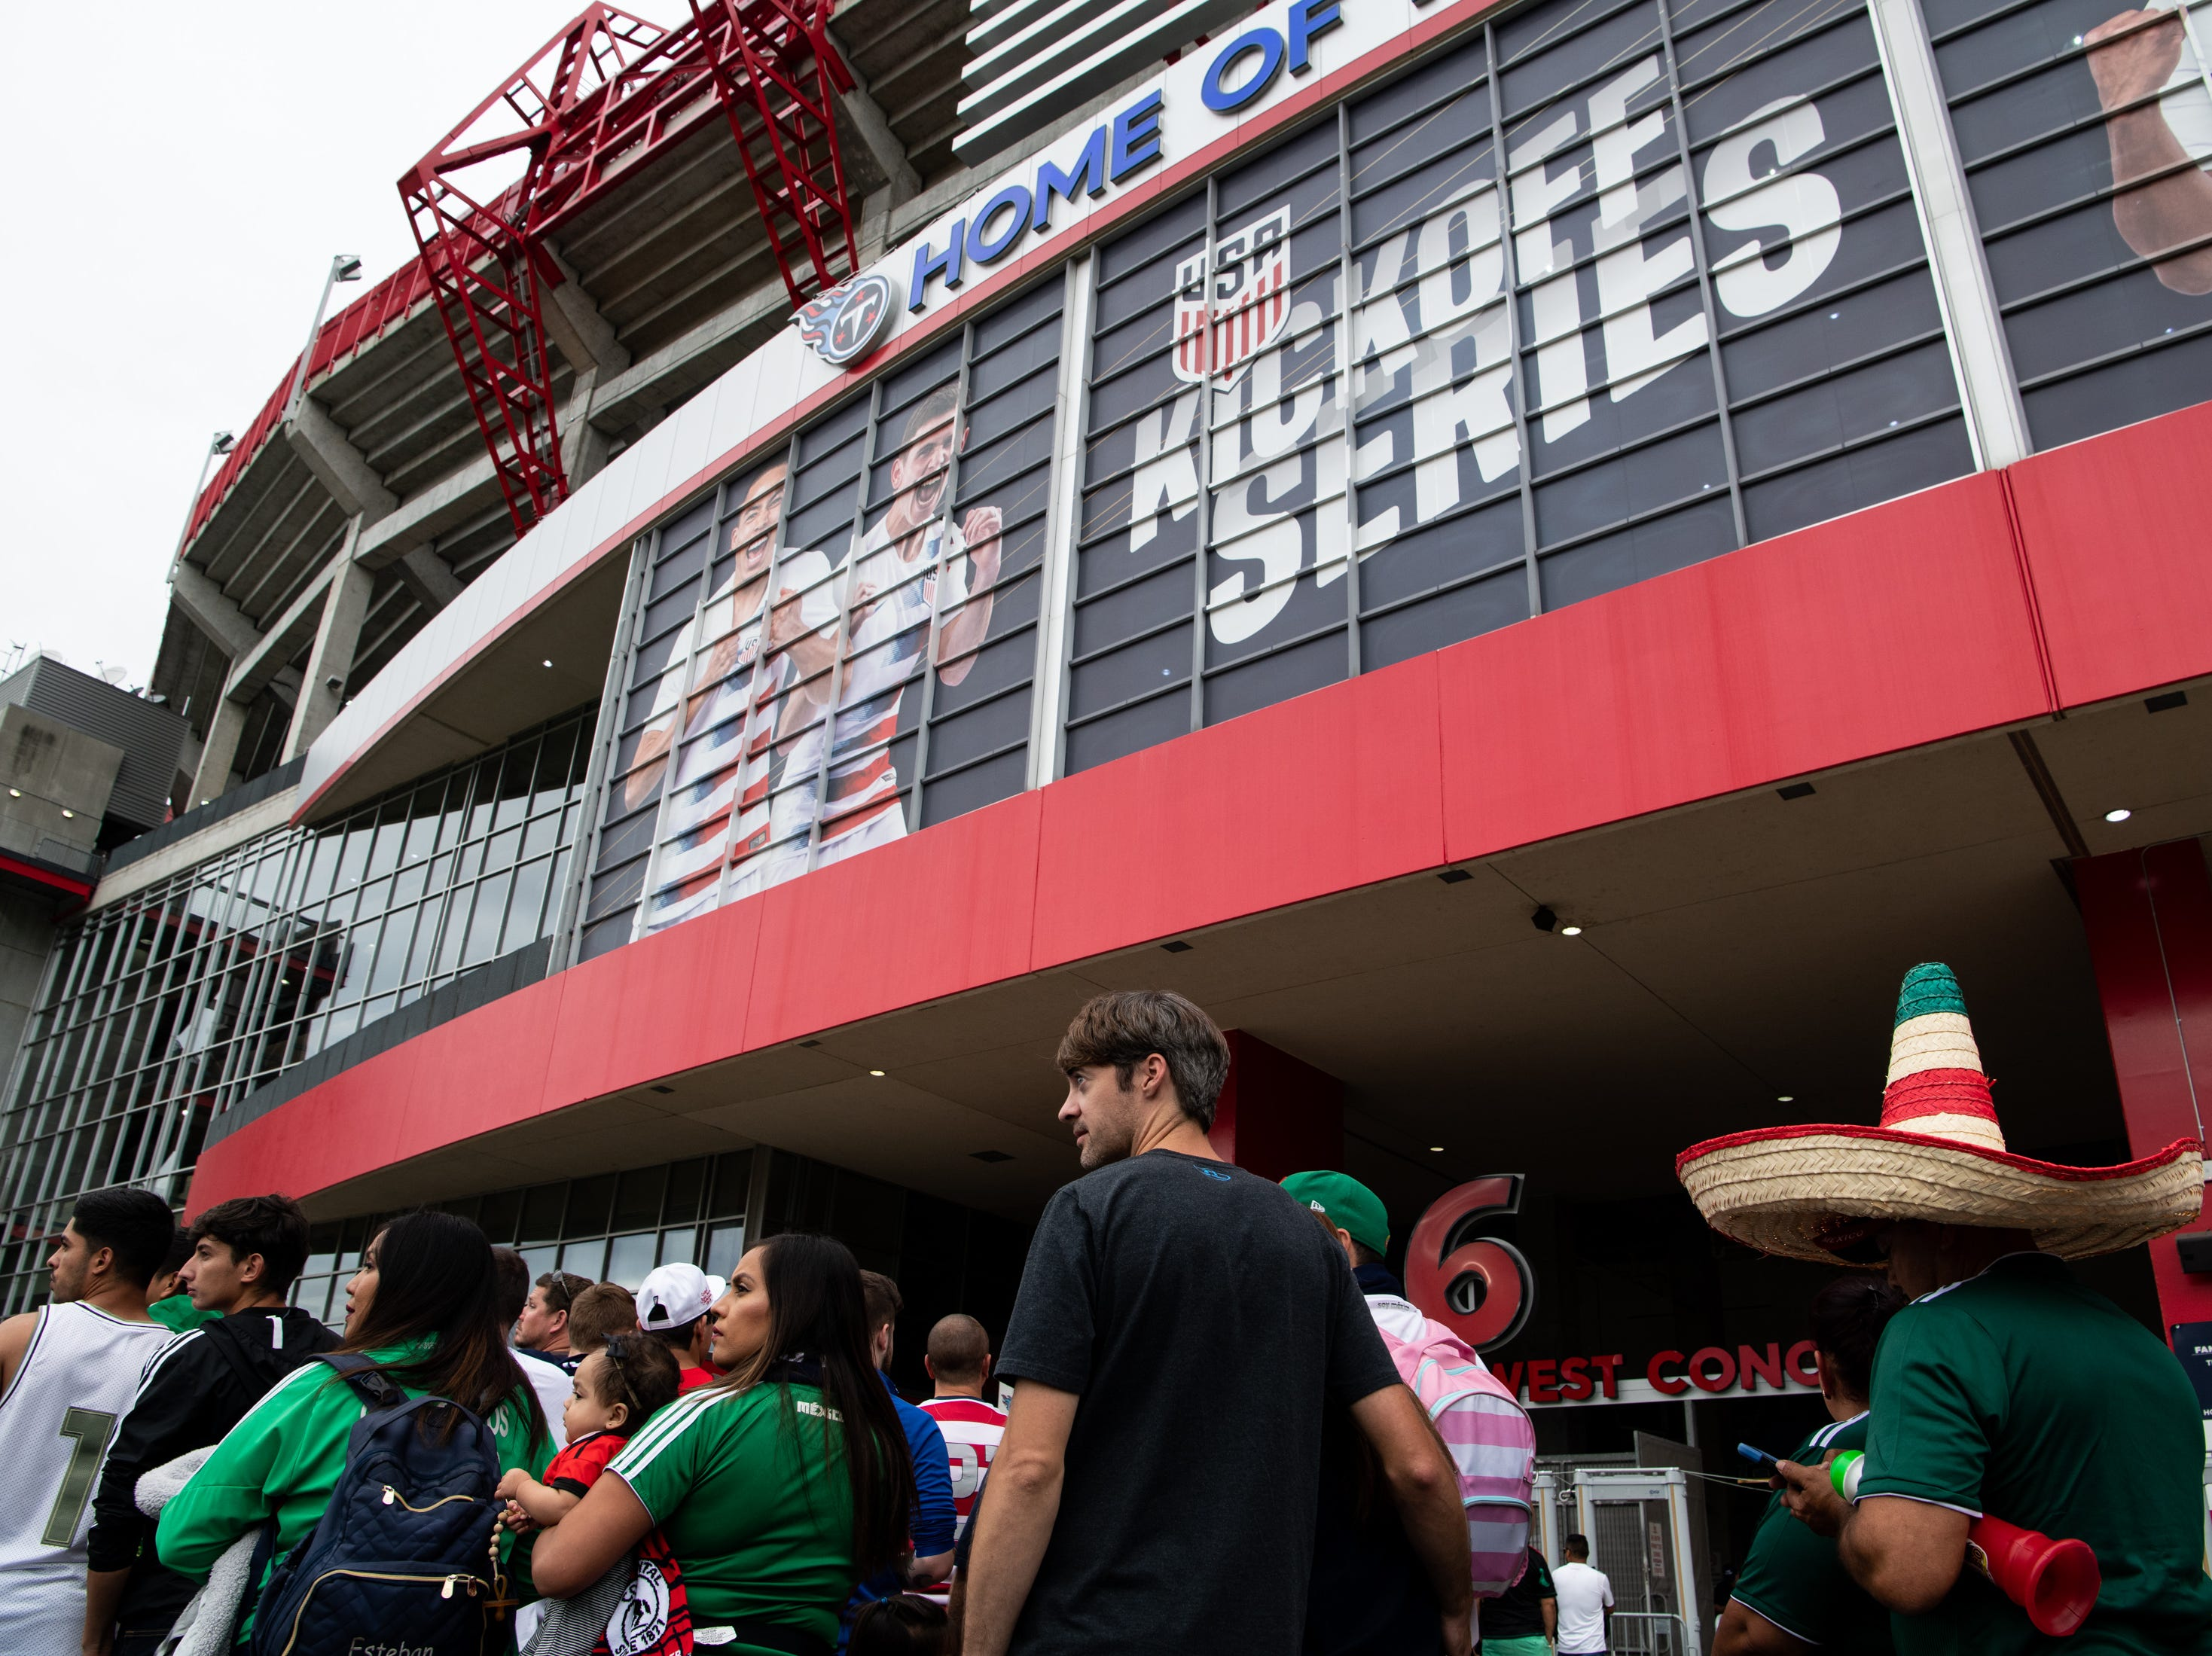 Fans line up before the game between USA and Mexico at Nissan Stadium in Nashville, Tenn., Tuesday, Sept. 11, 2018.